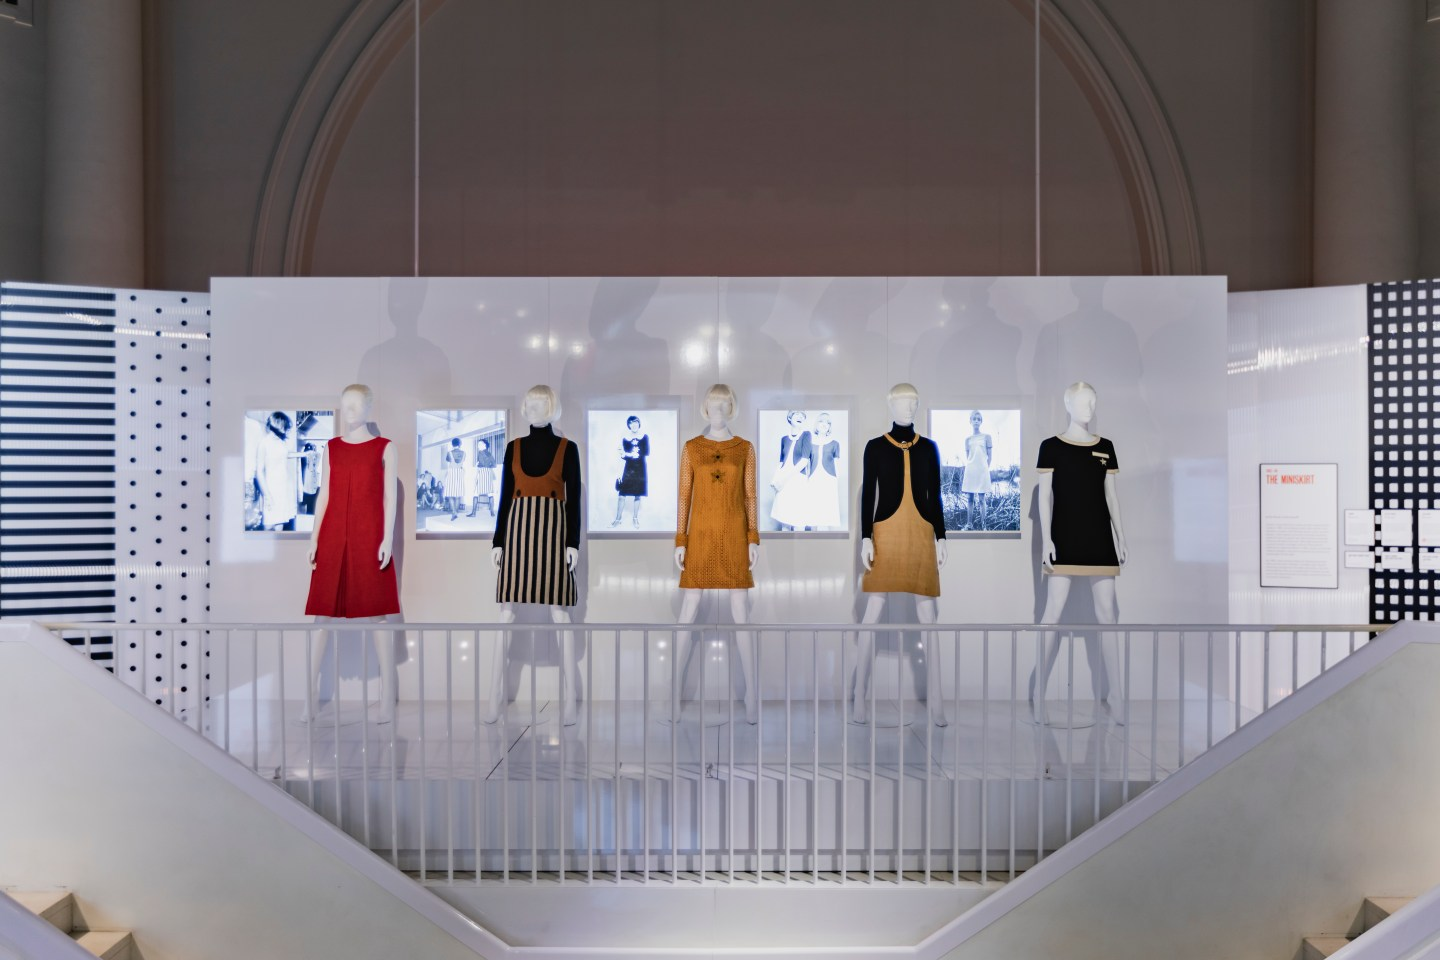 Mary Quant 1960s Fashion Exhibition at the V&A